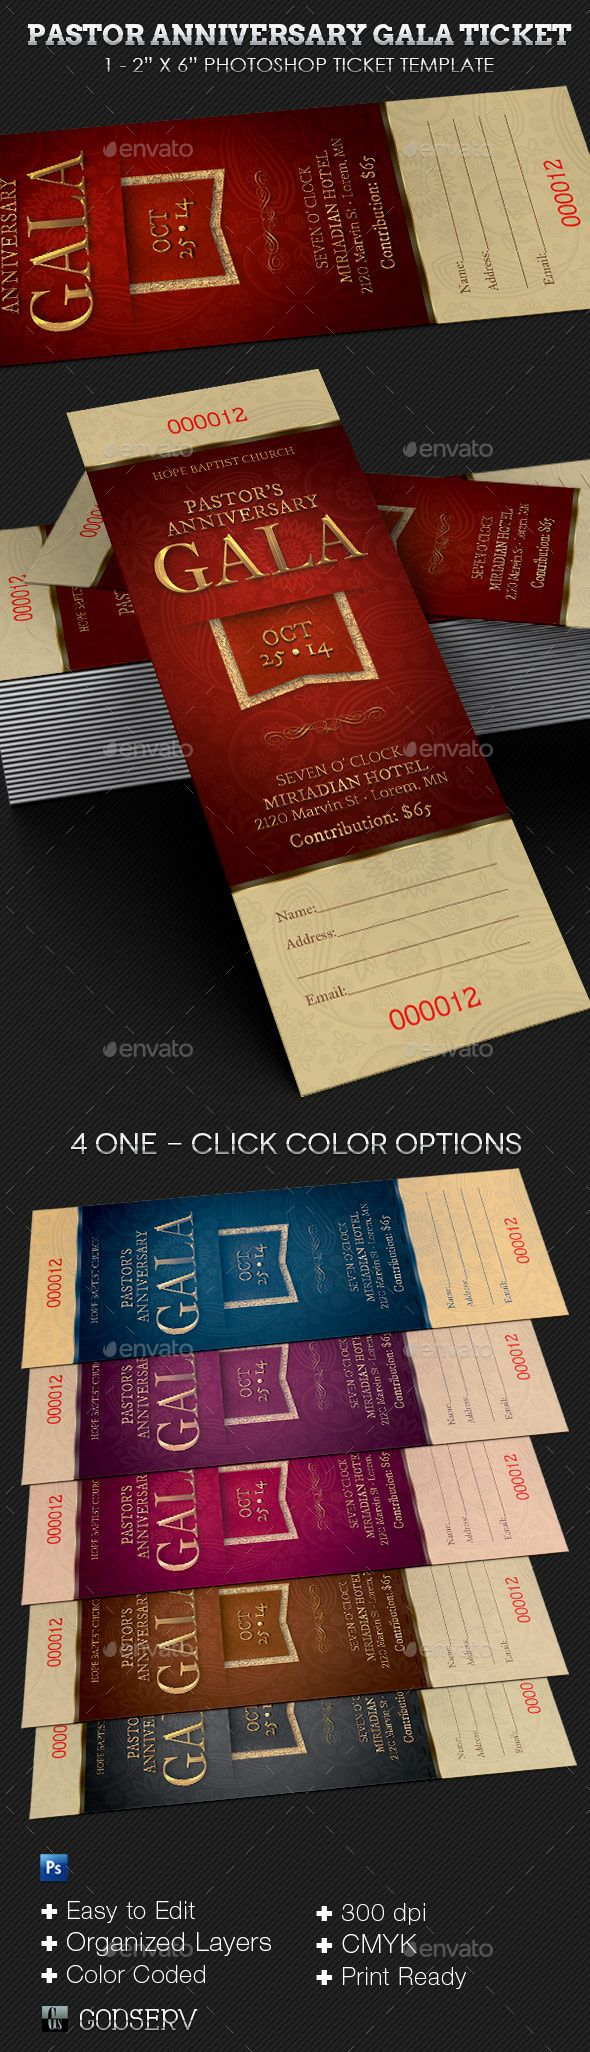 Pin by best Graphic Design on Ticket Templates Pastor